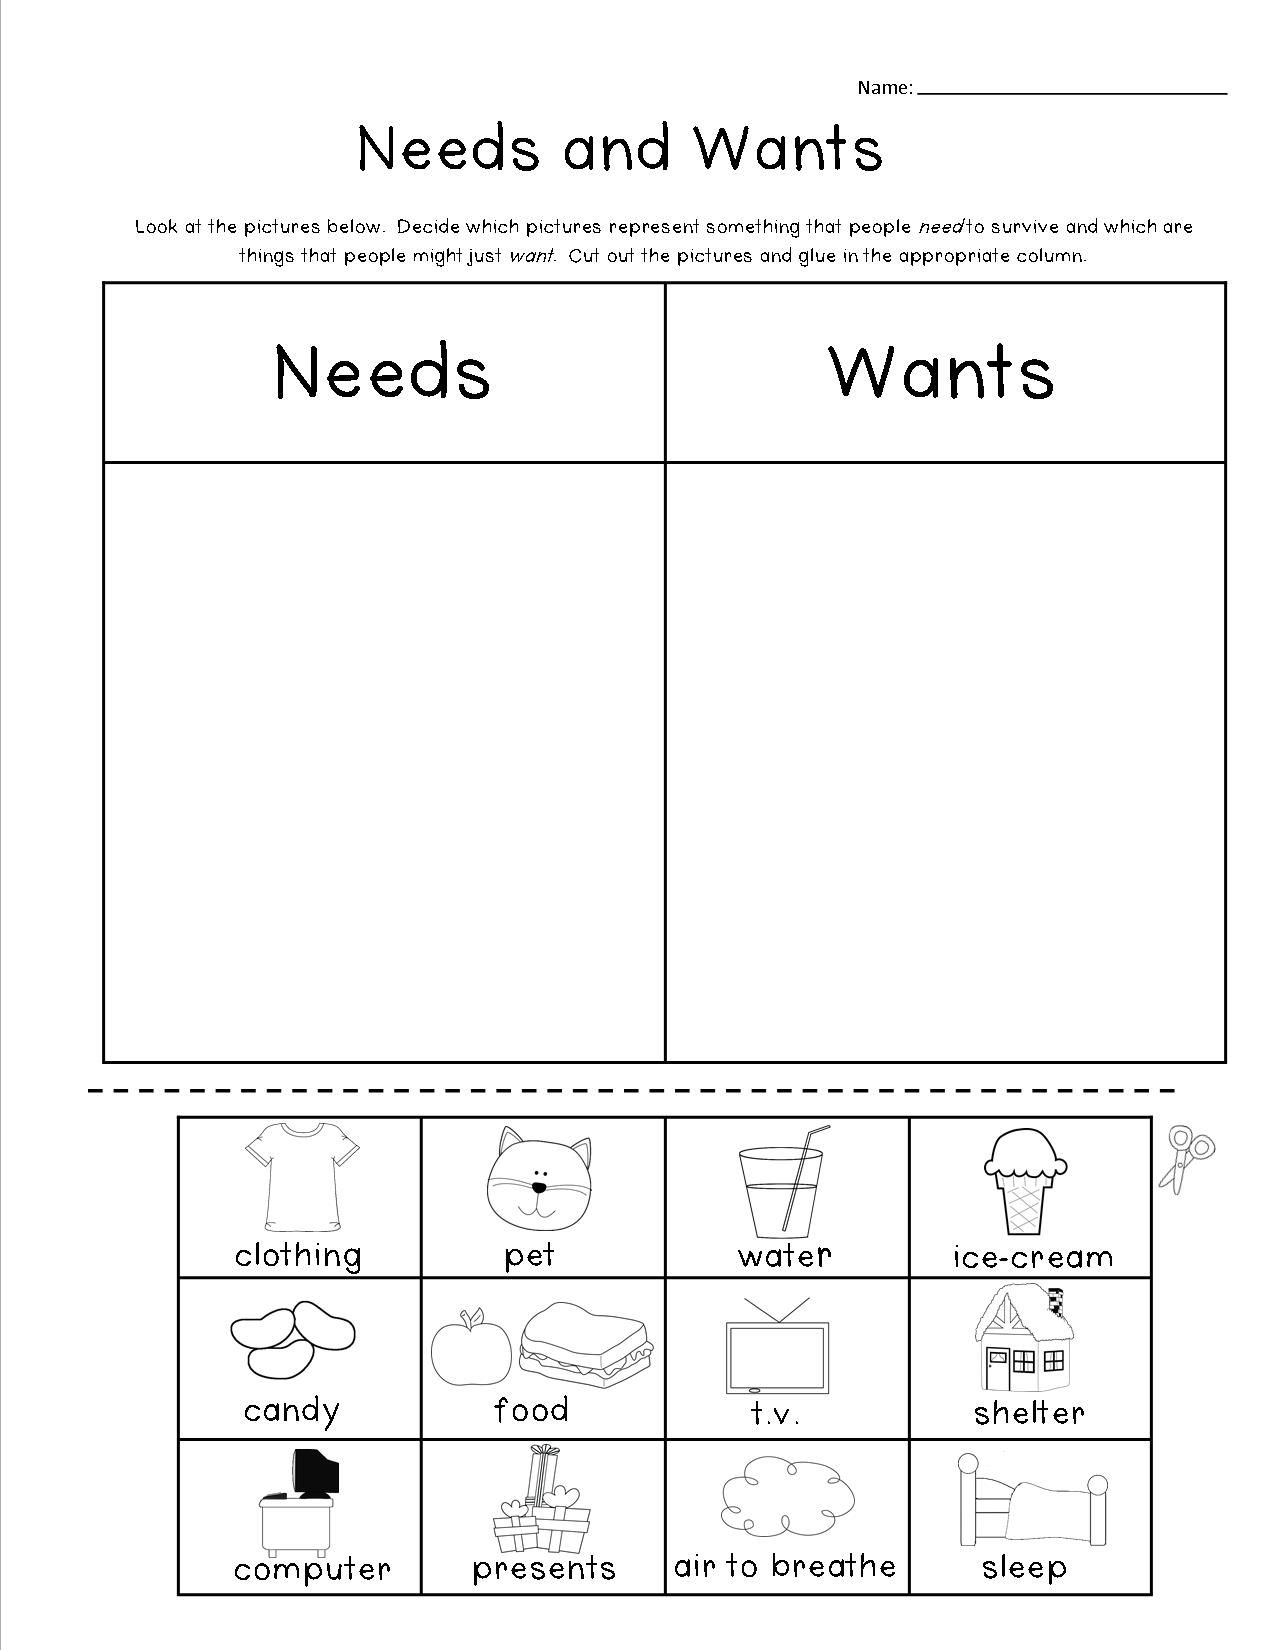 Worksheets Wants And Needs Worksheet Cheatslist Free